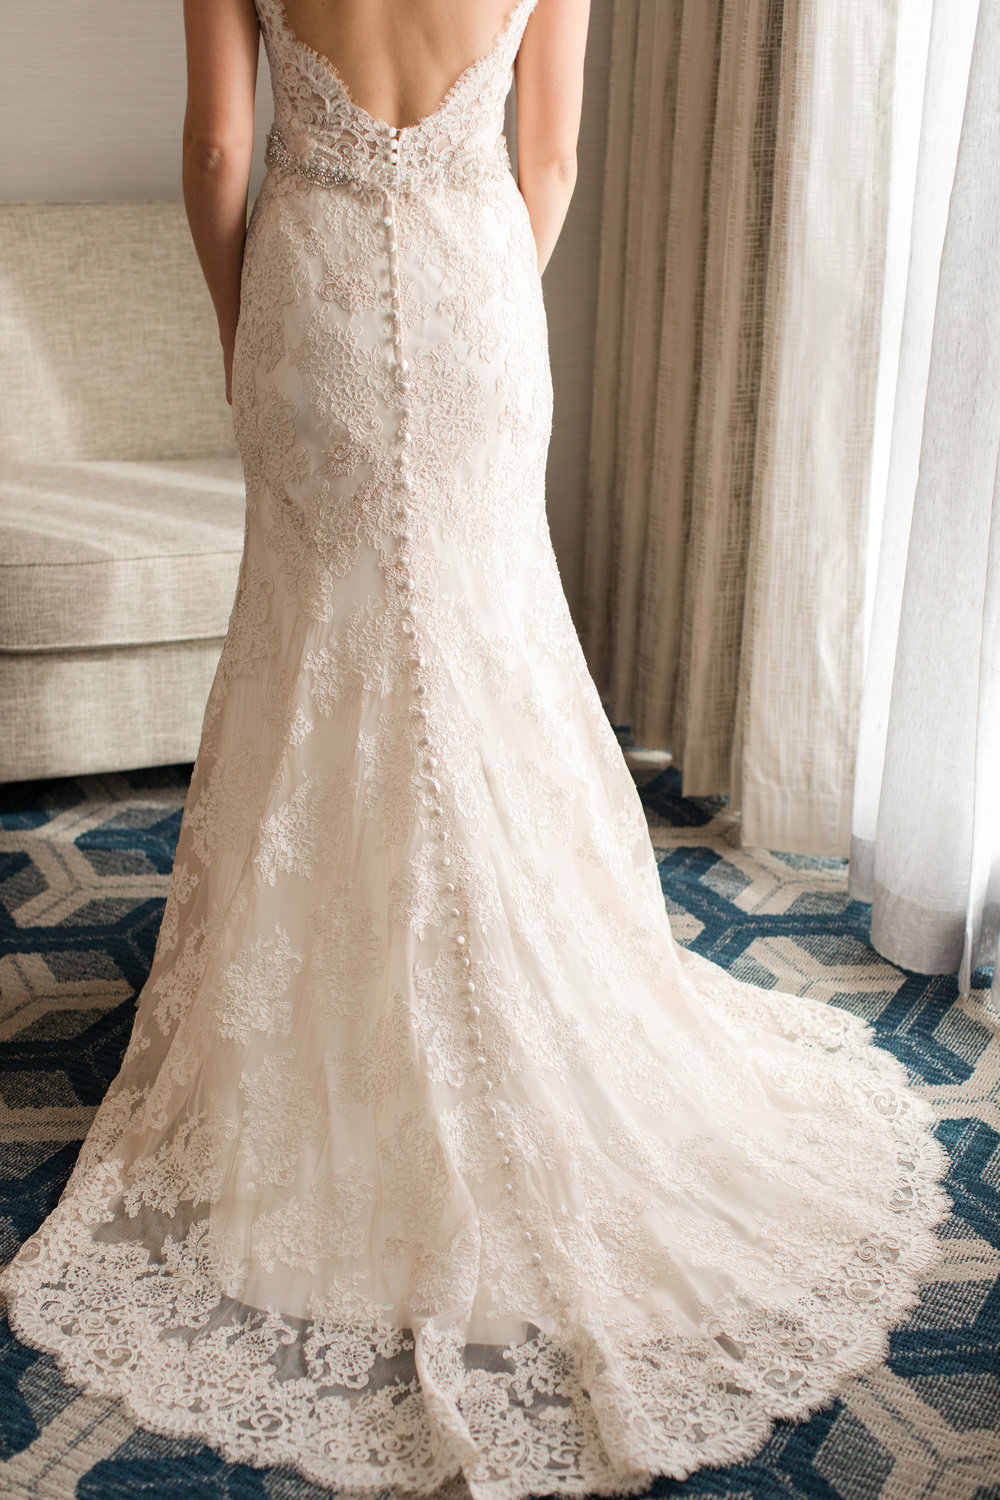 allure bridal lace wedding dress with low back and buttons at sheraton eatontown